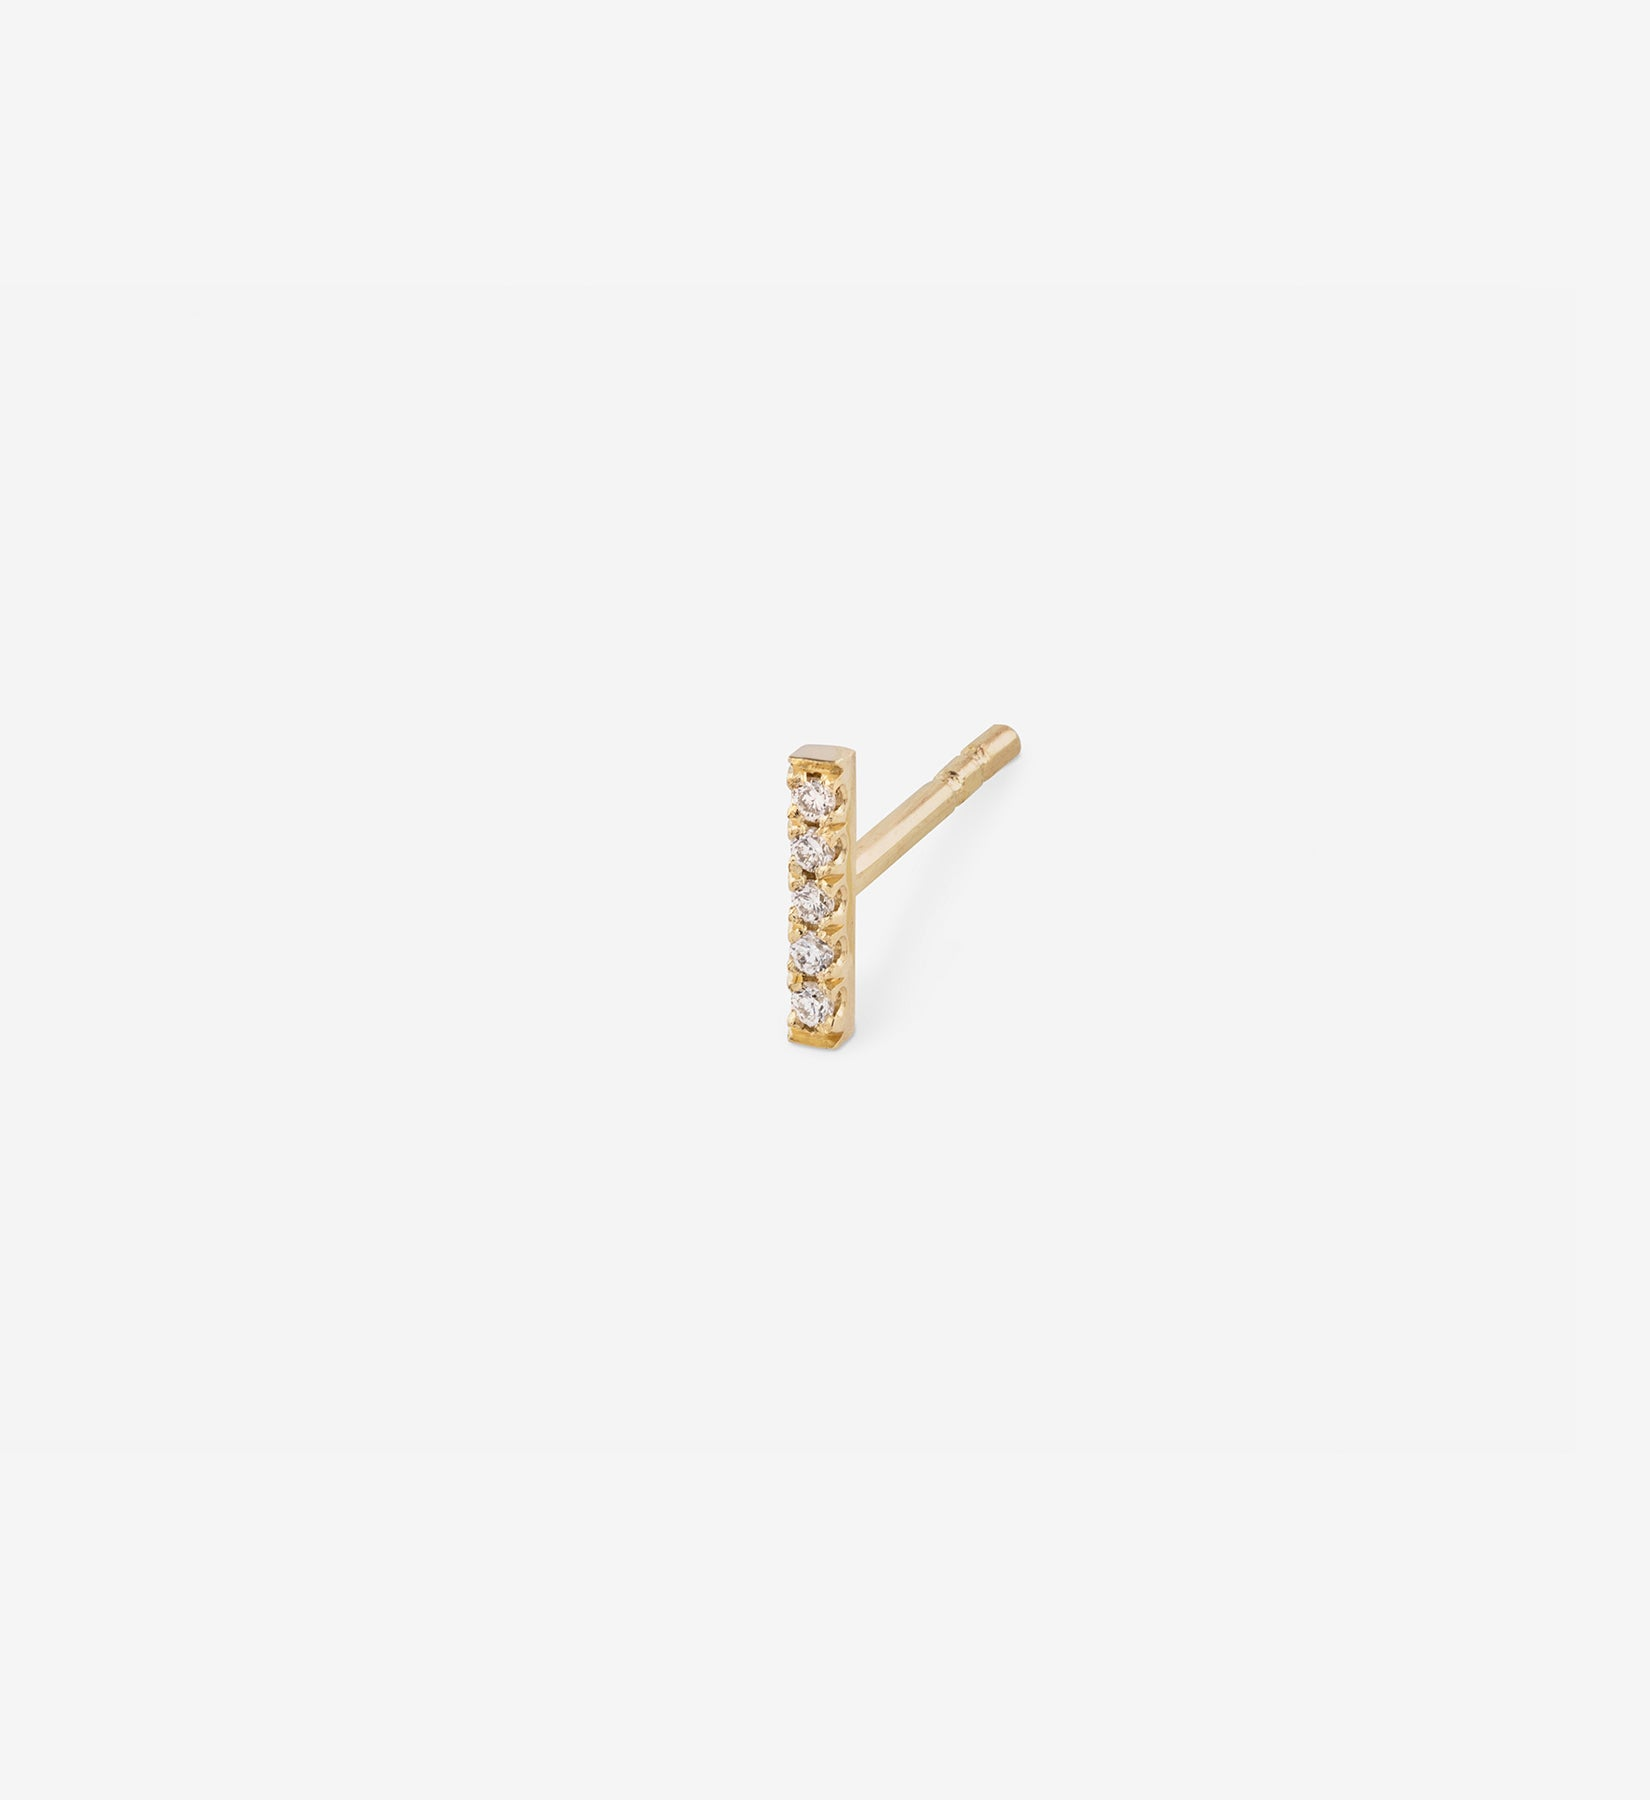 Diamond Line Earring 0.025 in 14K Gold - Single